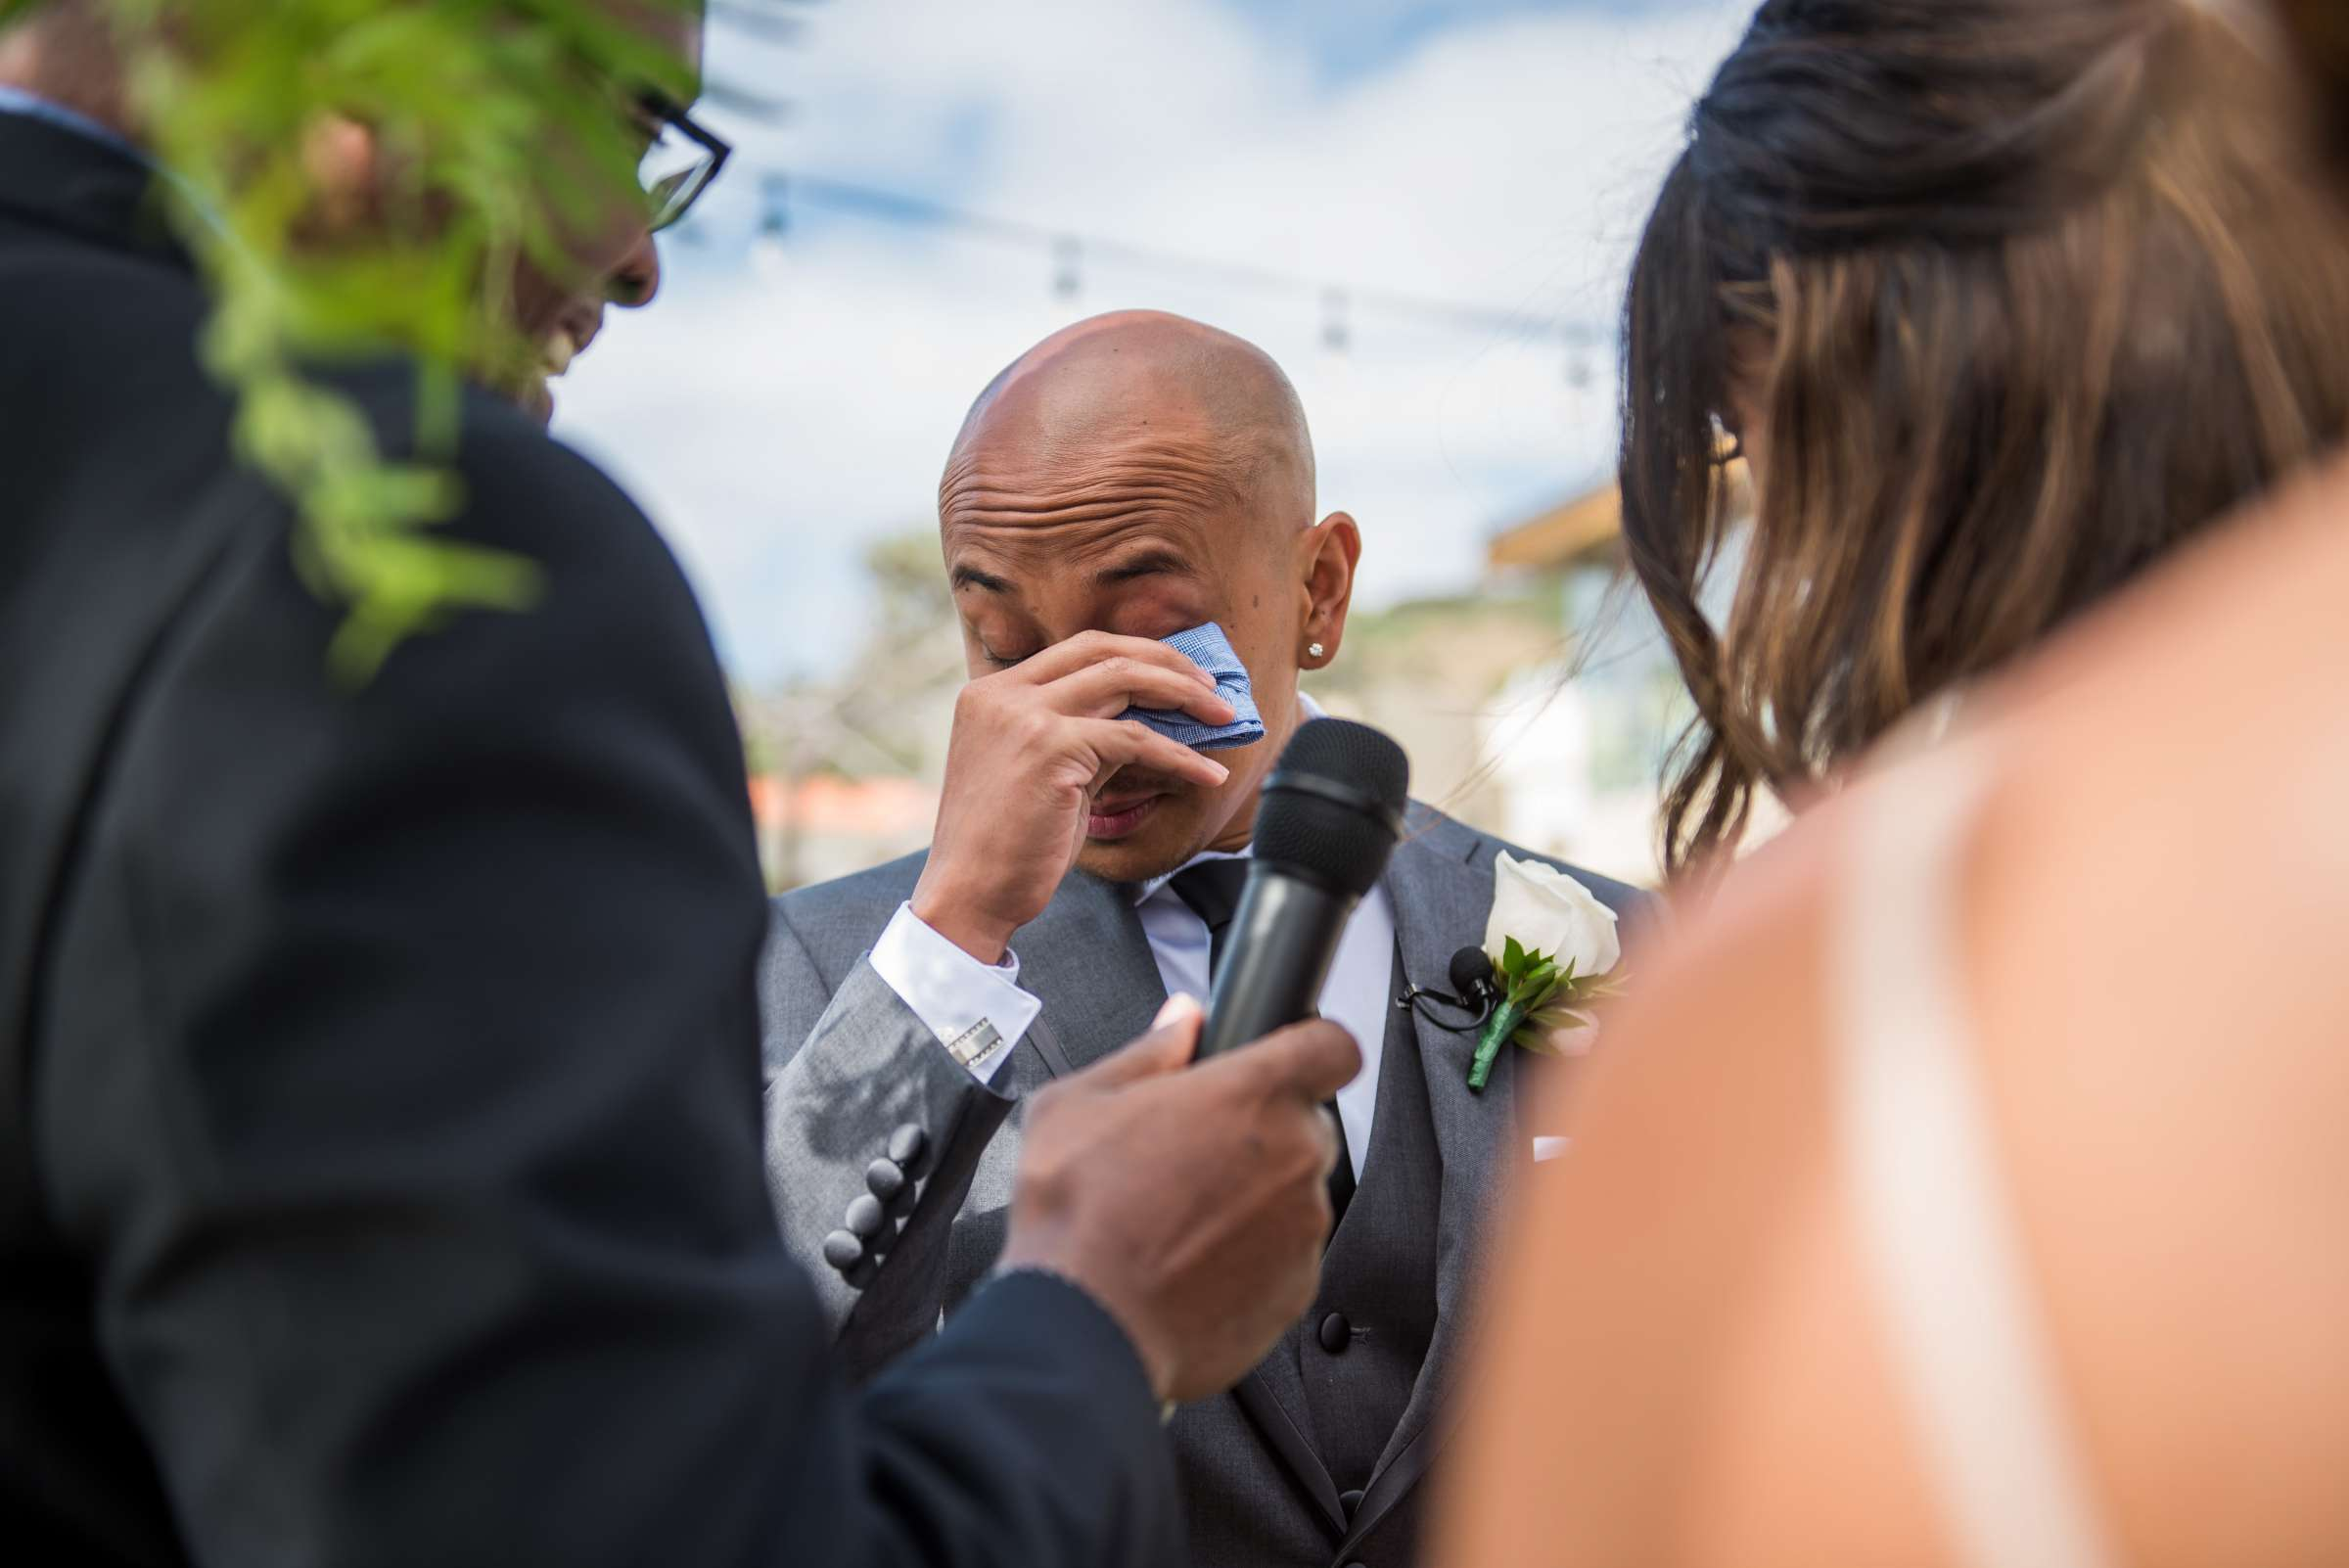 Scripps Seaside Forum Wedding coordinated by Lavish Weddings, Cindy and Justin Wedding Photo #381826 by True Photography